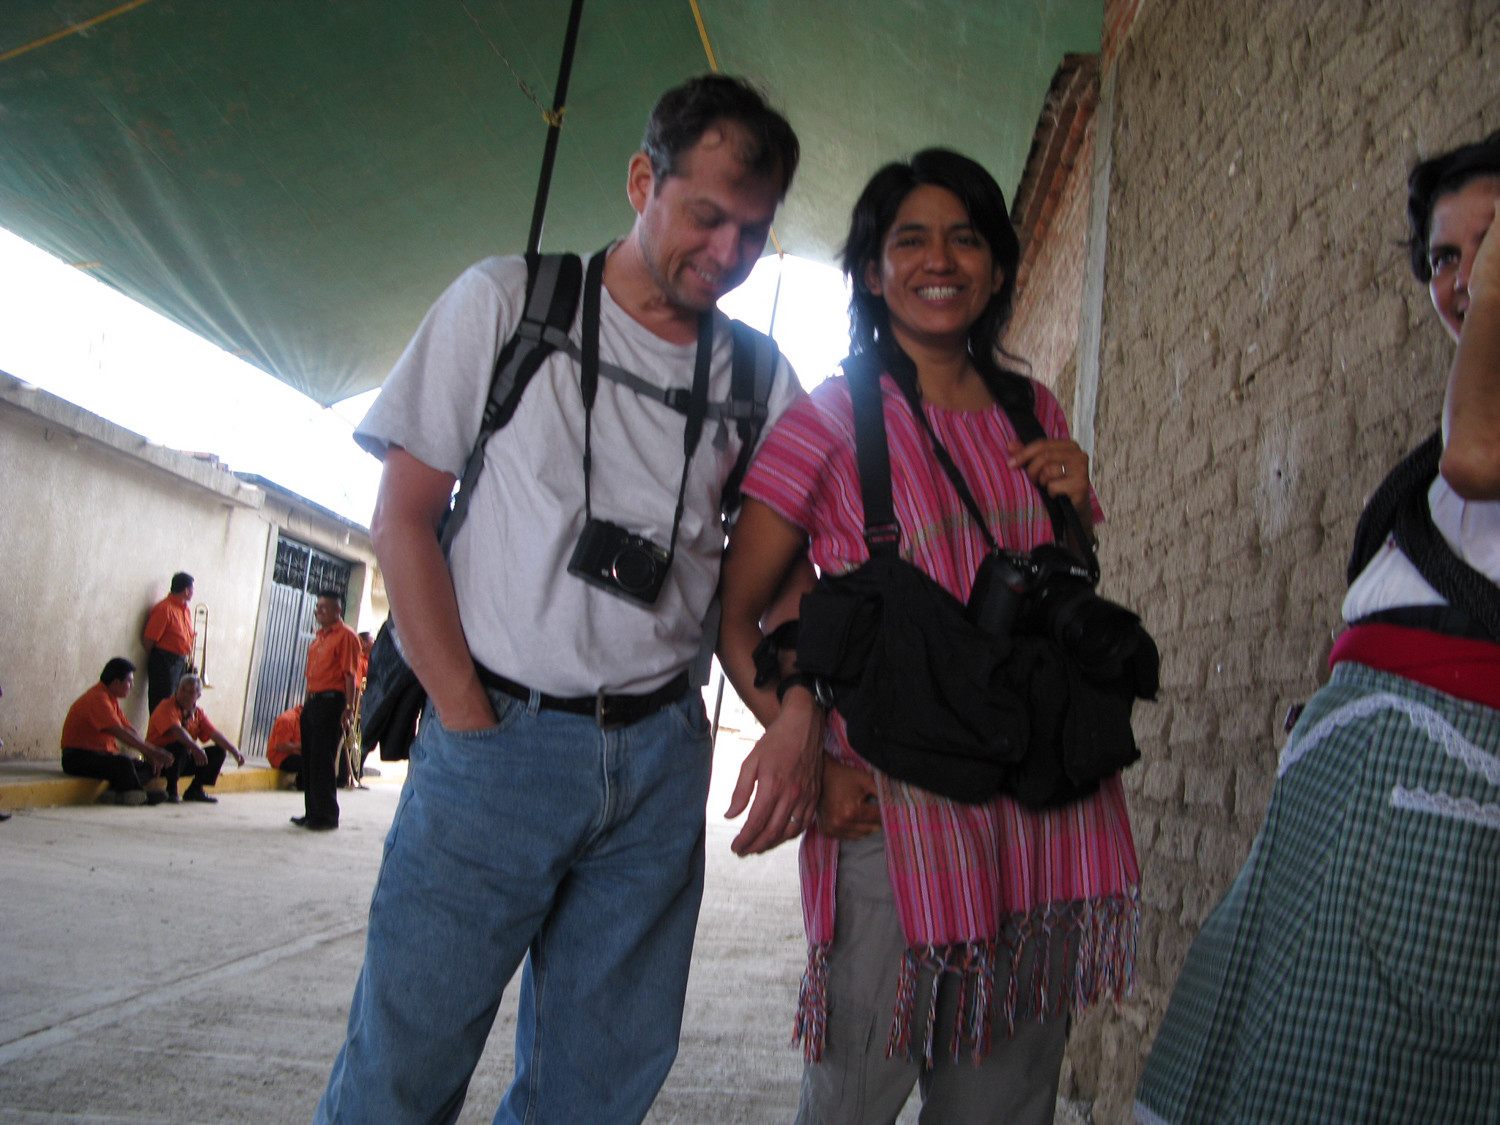 Photographer and Riverdale native Wesley Bocxe, left, with his wife, Elizabeth Esguerra Rosas, were victims of the Sept. 19 earthquake that rocked Mexico City. Although Bocxe was hospitalized with his injuries, his wife was killed when their apartment building collapsed. Their daughter, Amara, was unharmed.